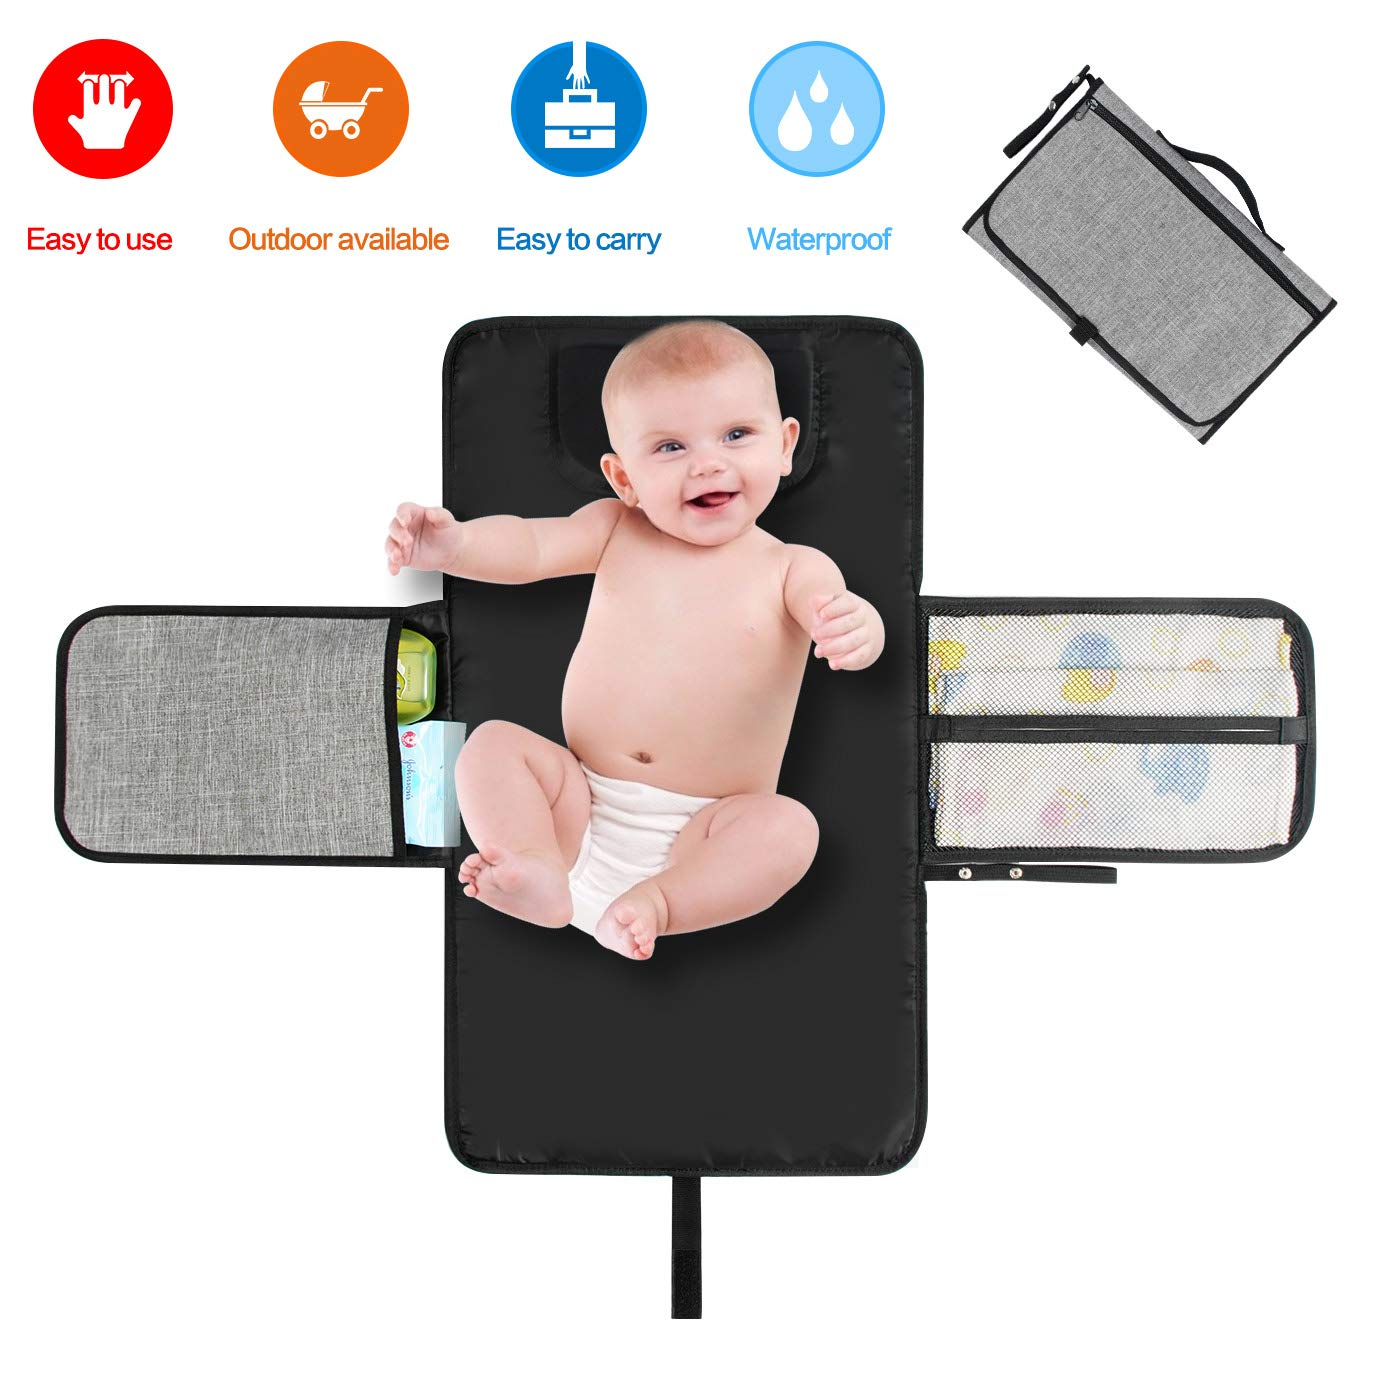 Portable Changing Mat Baby Waterproof Diapers Changing Pad Kit with Pockets Lightweight Travel Home Changing Diaper Pad Bag with Head Cushion for Toddlers Infants and Newborns - Baby Shower Gift